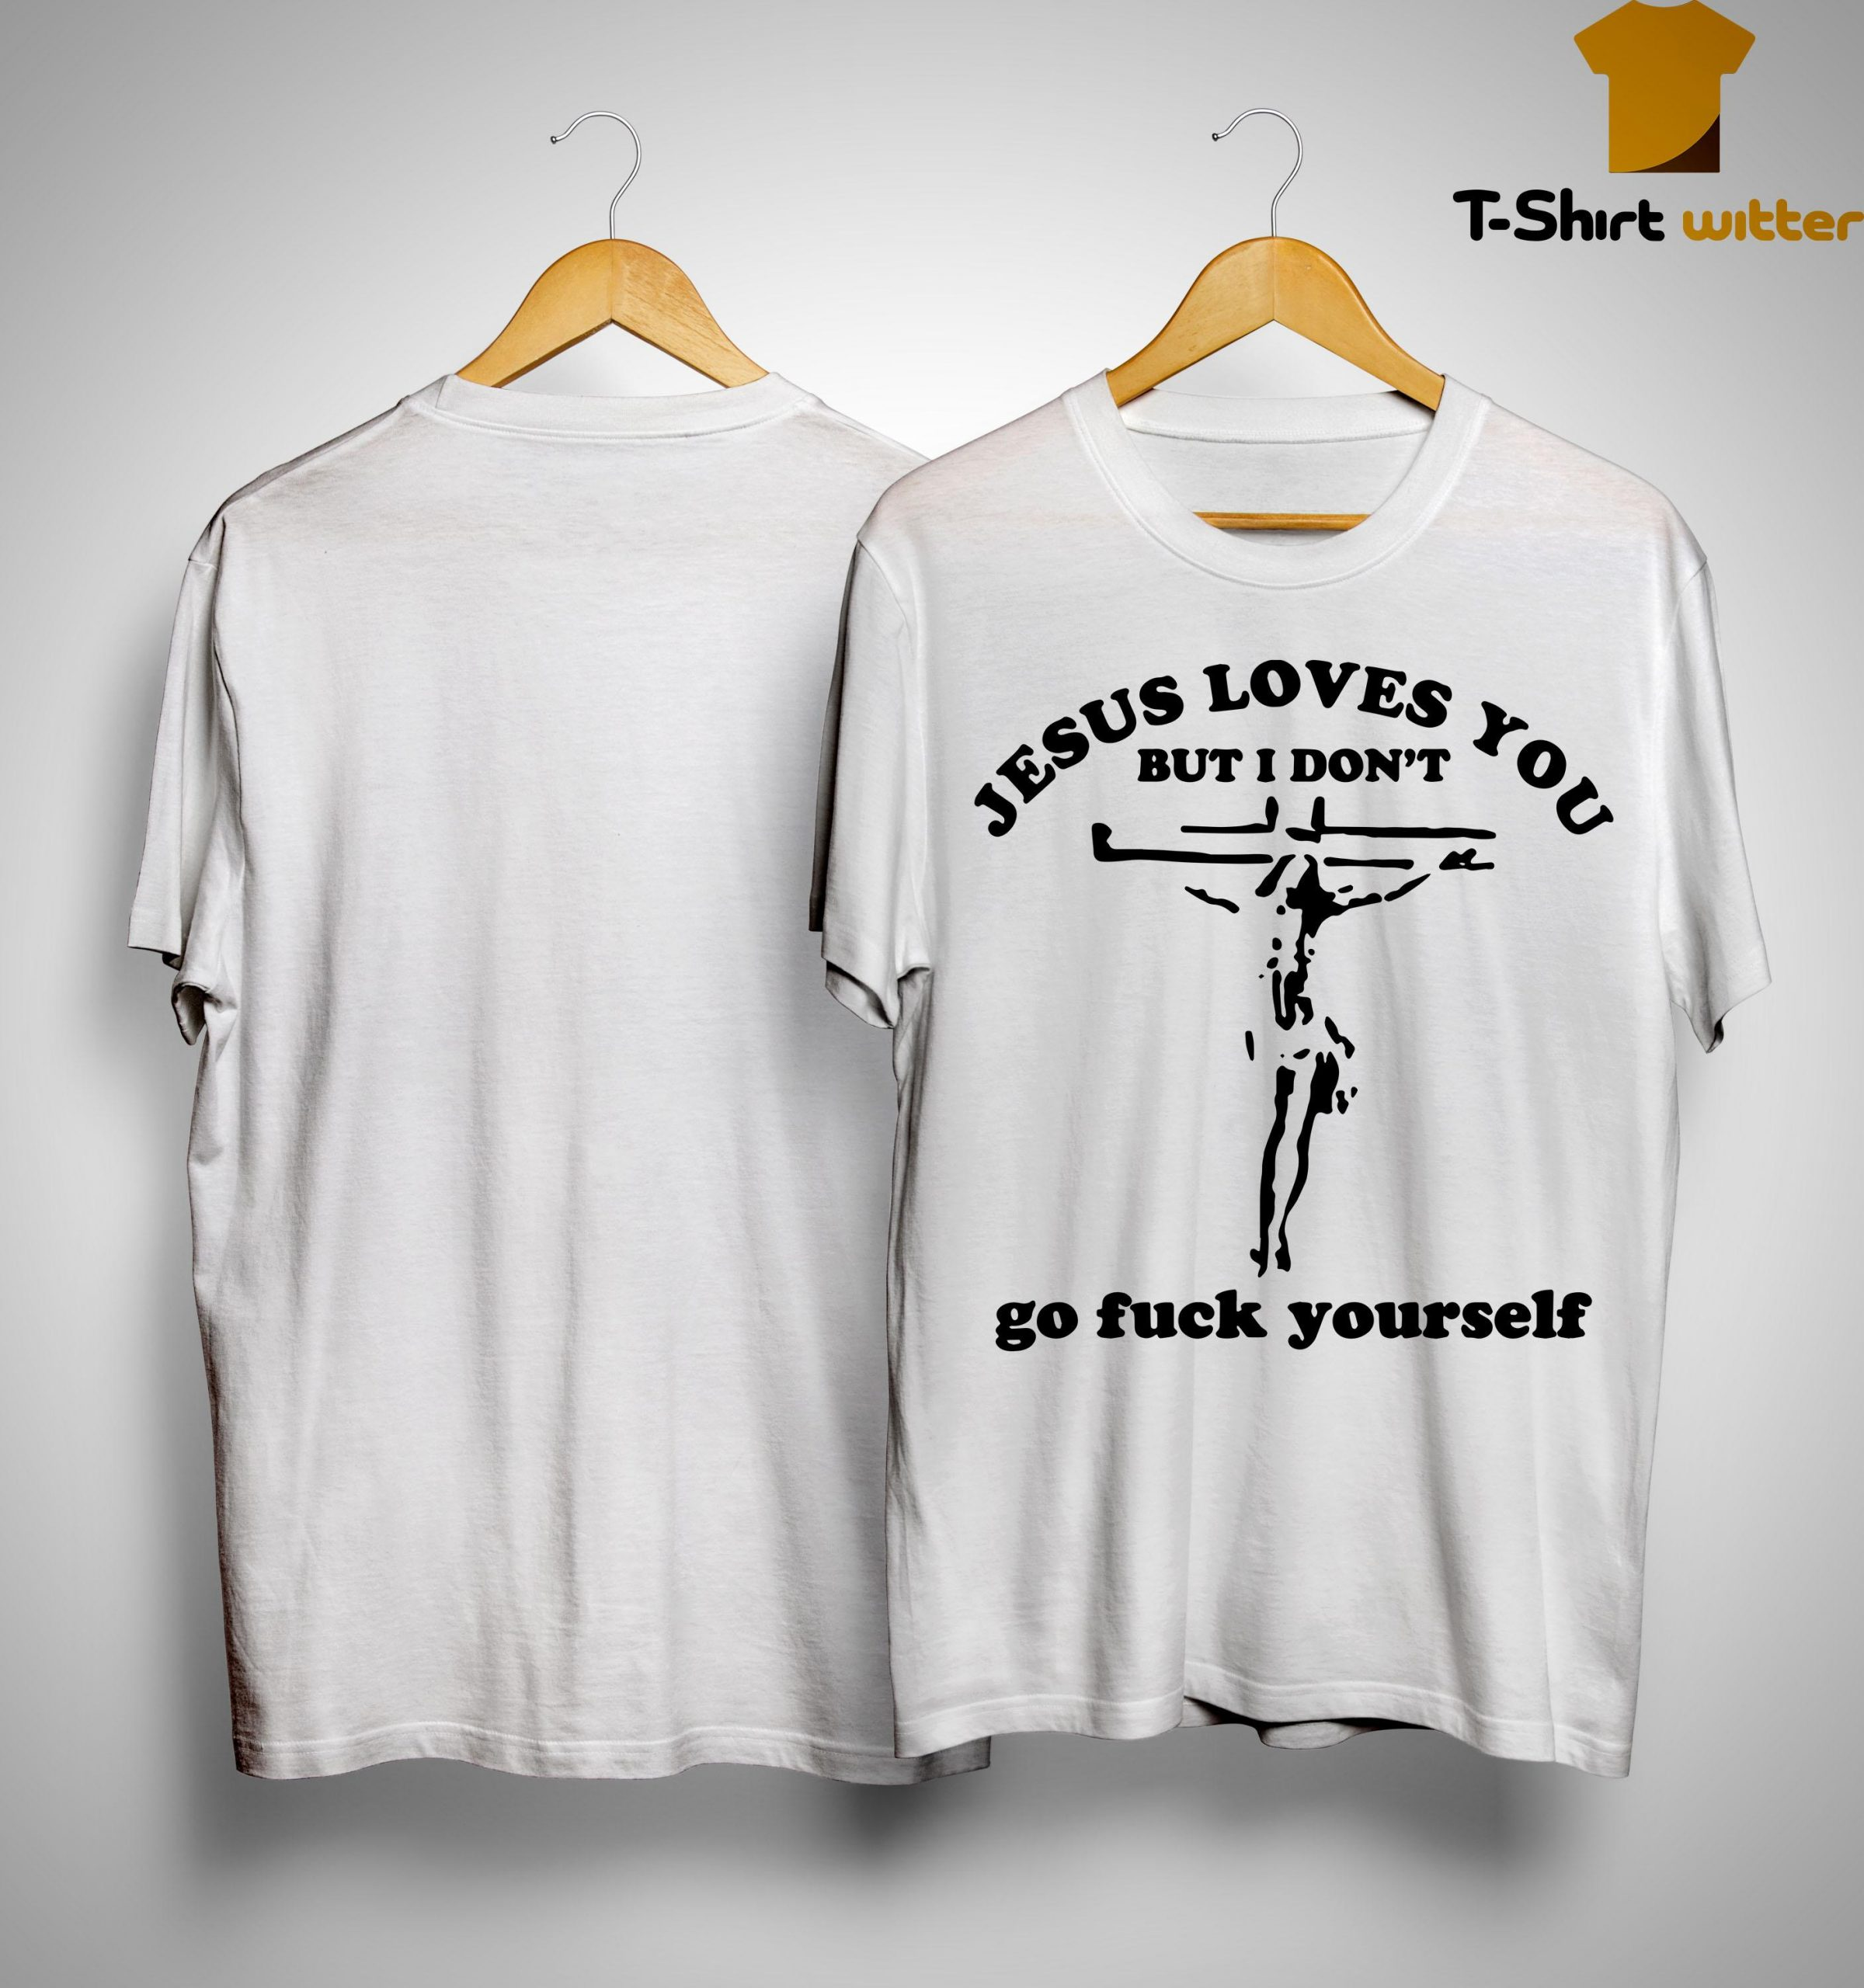 Jesus Loves You But I Don't Go Fuck Yourself Shirt